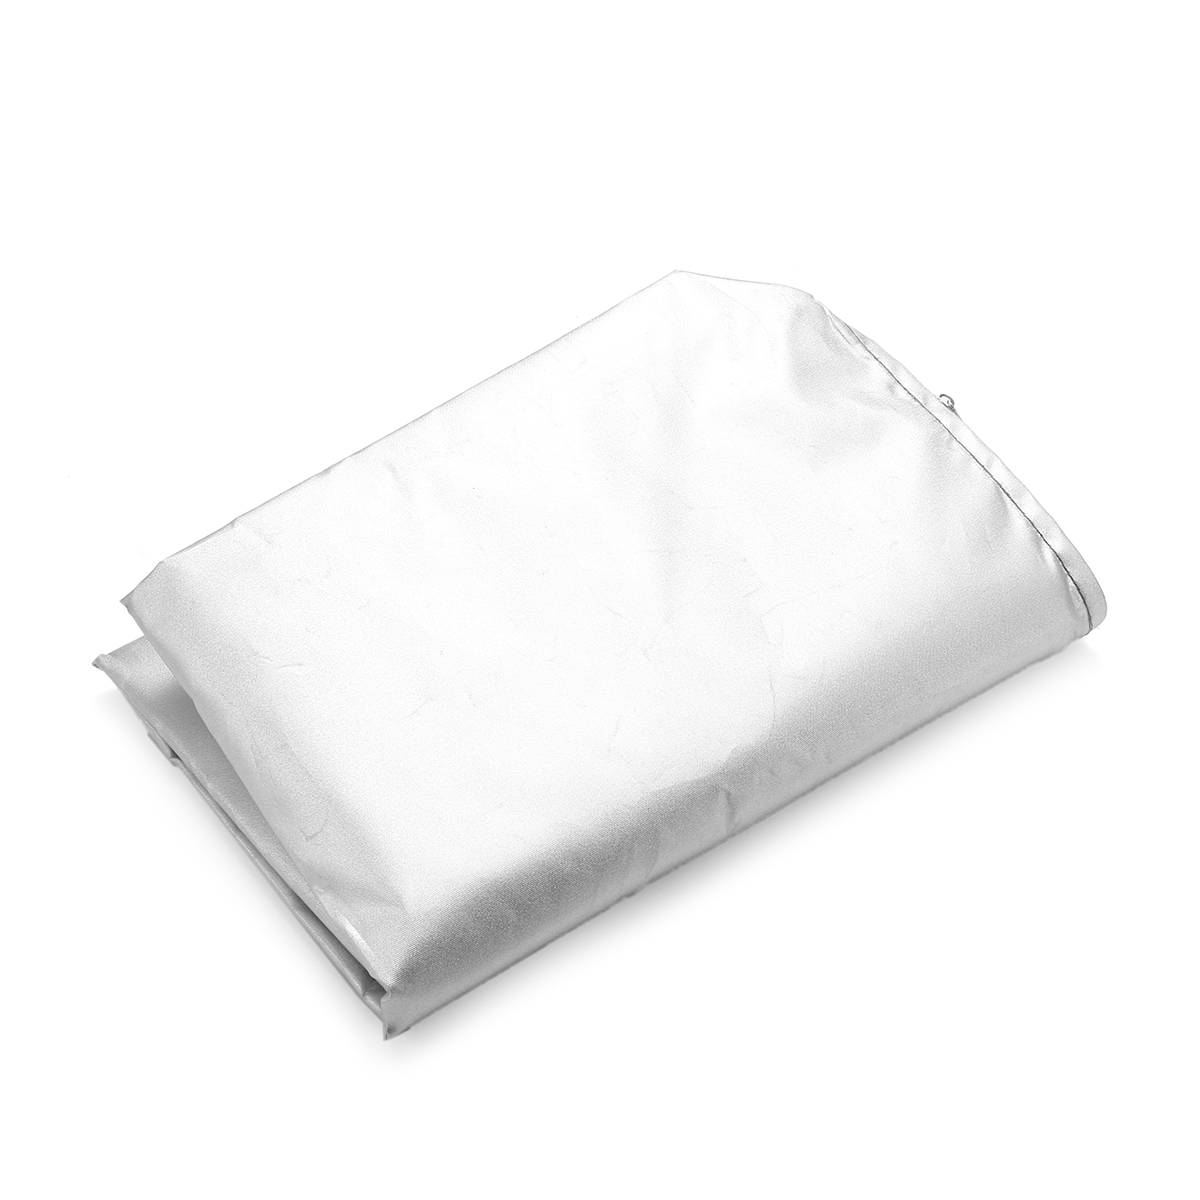 Washing Machine Cover Silver Water-proof Washer/Dryer Cover Dustproof